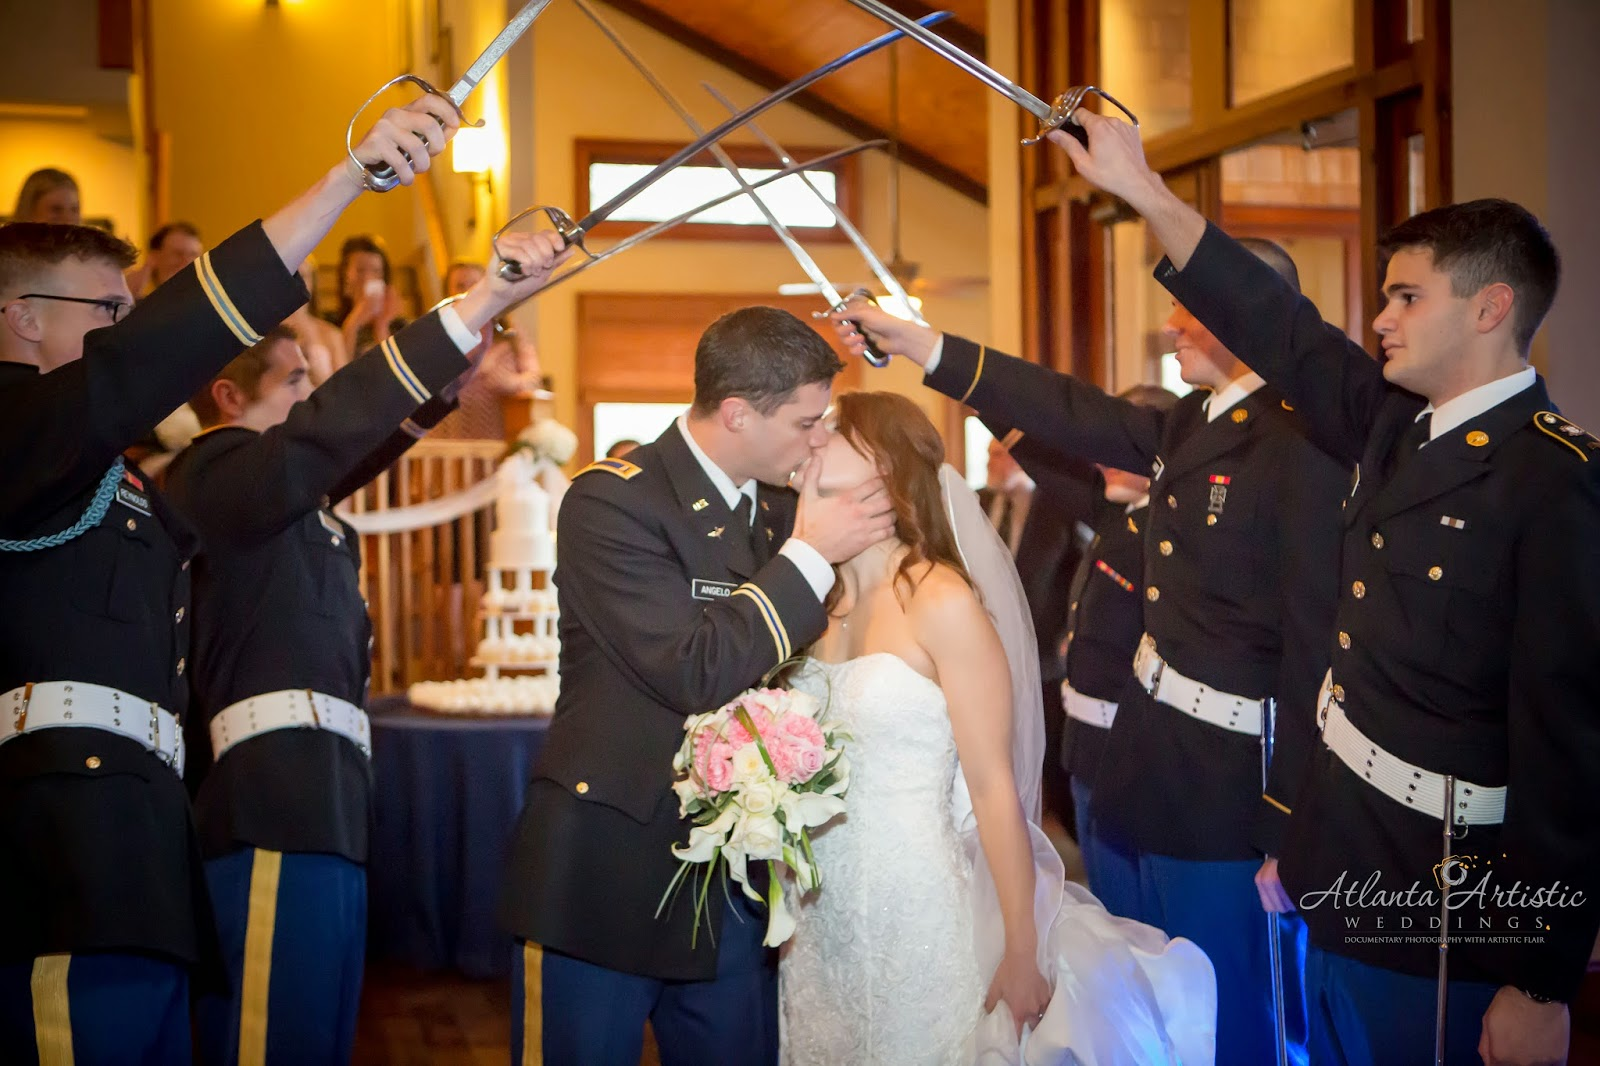 Military%2BWedding%2Bphotos%2Bby%2Batlanta%2Bartistic%2Bweddings.jpg